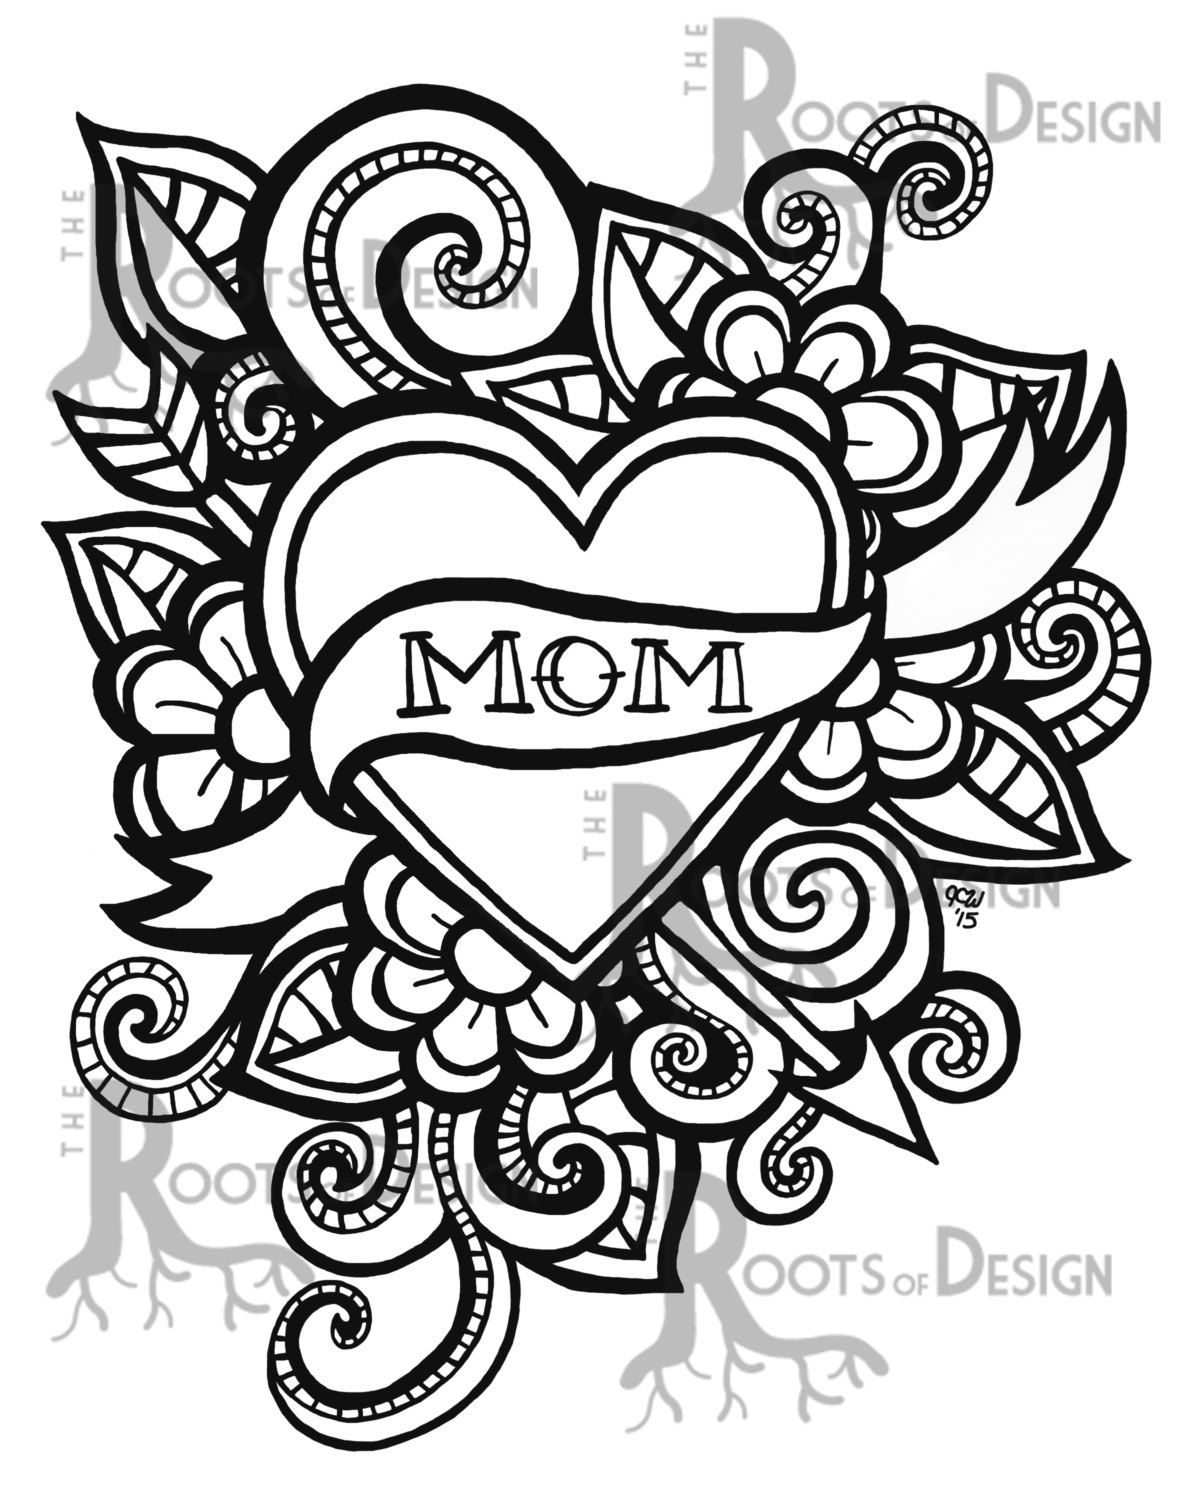 Instant Download Coloring Page Mom Tattoo Style Etsy Coloring Pages Mom Coloring Pages Doodle Art